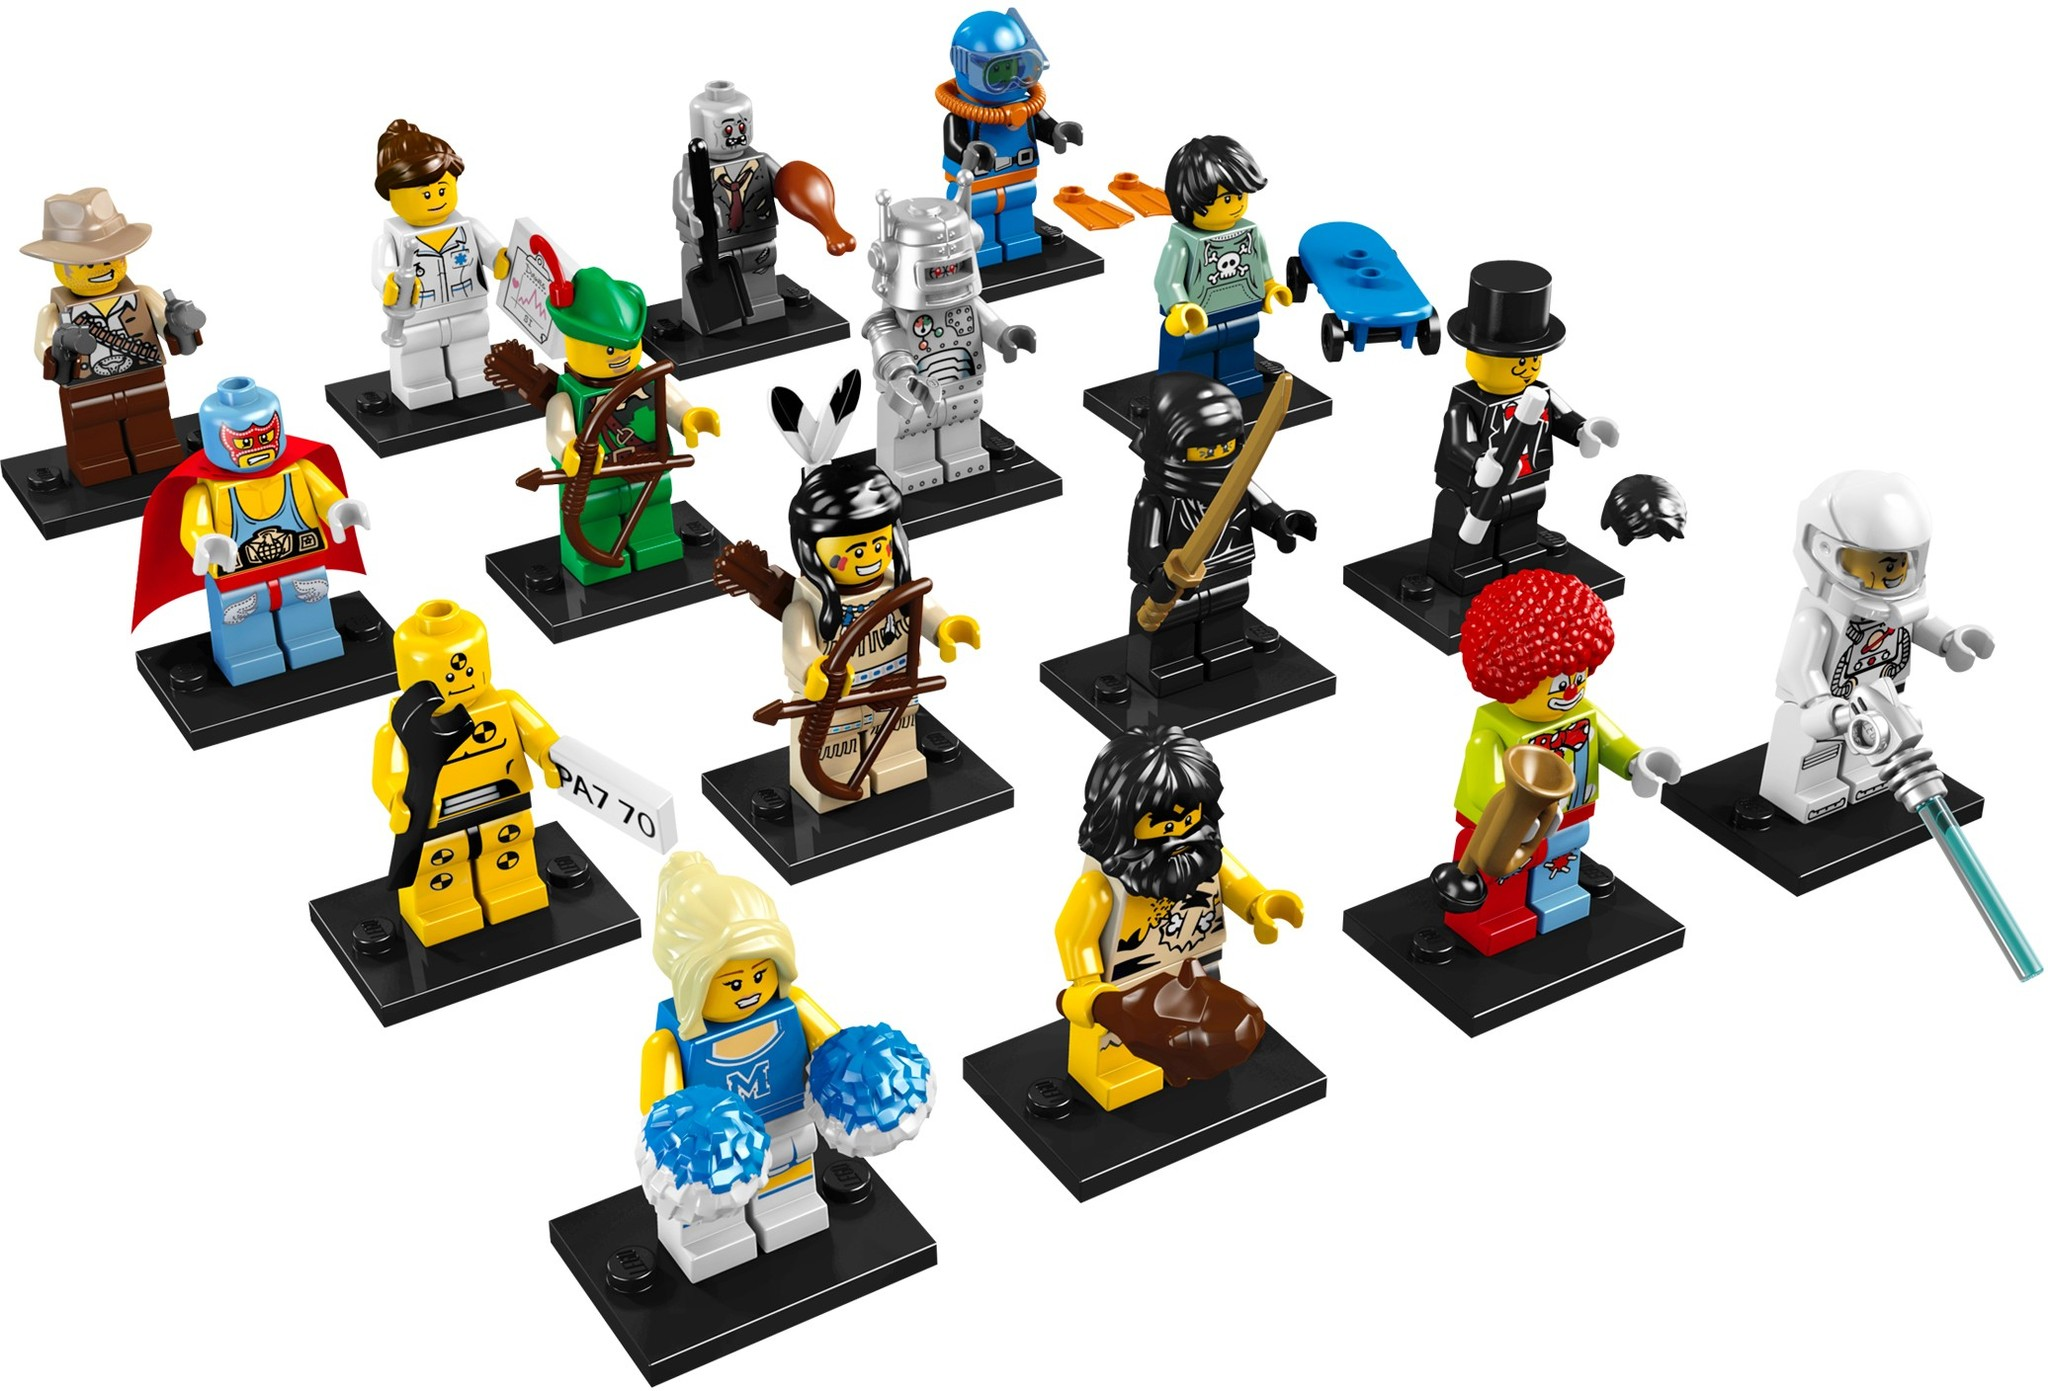 LEGO 8683 - LEGO Minifigures Series 1 Complete Full Set (16 pcs) MISP